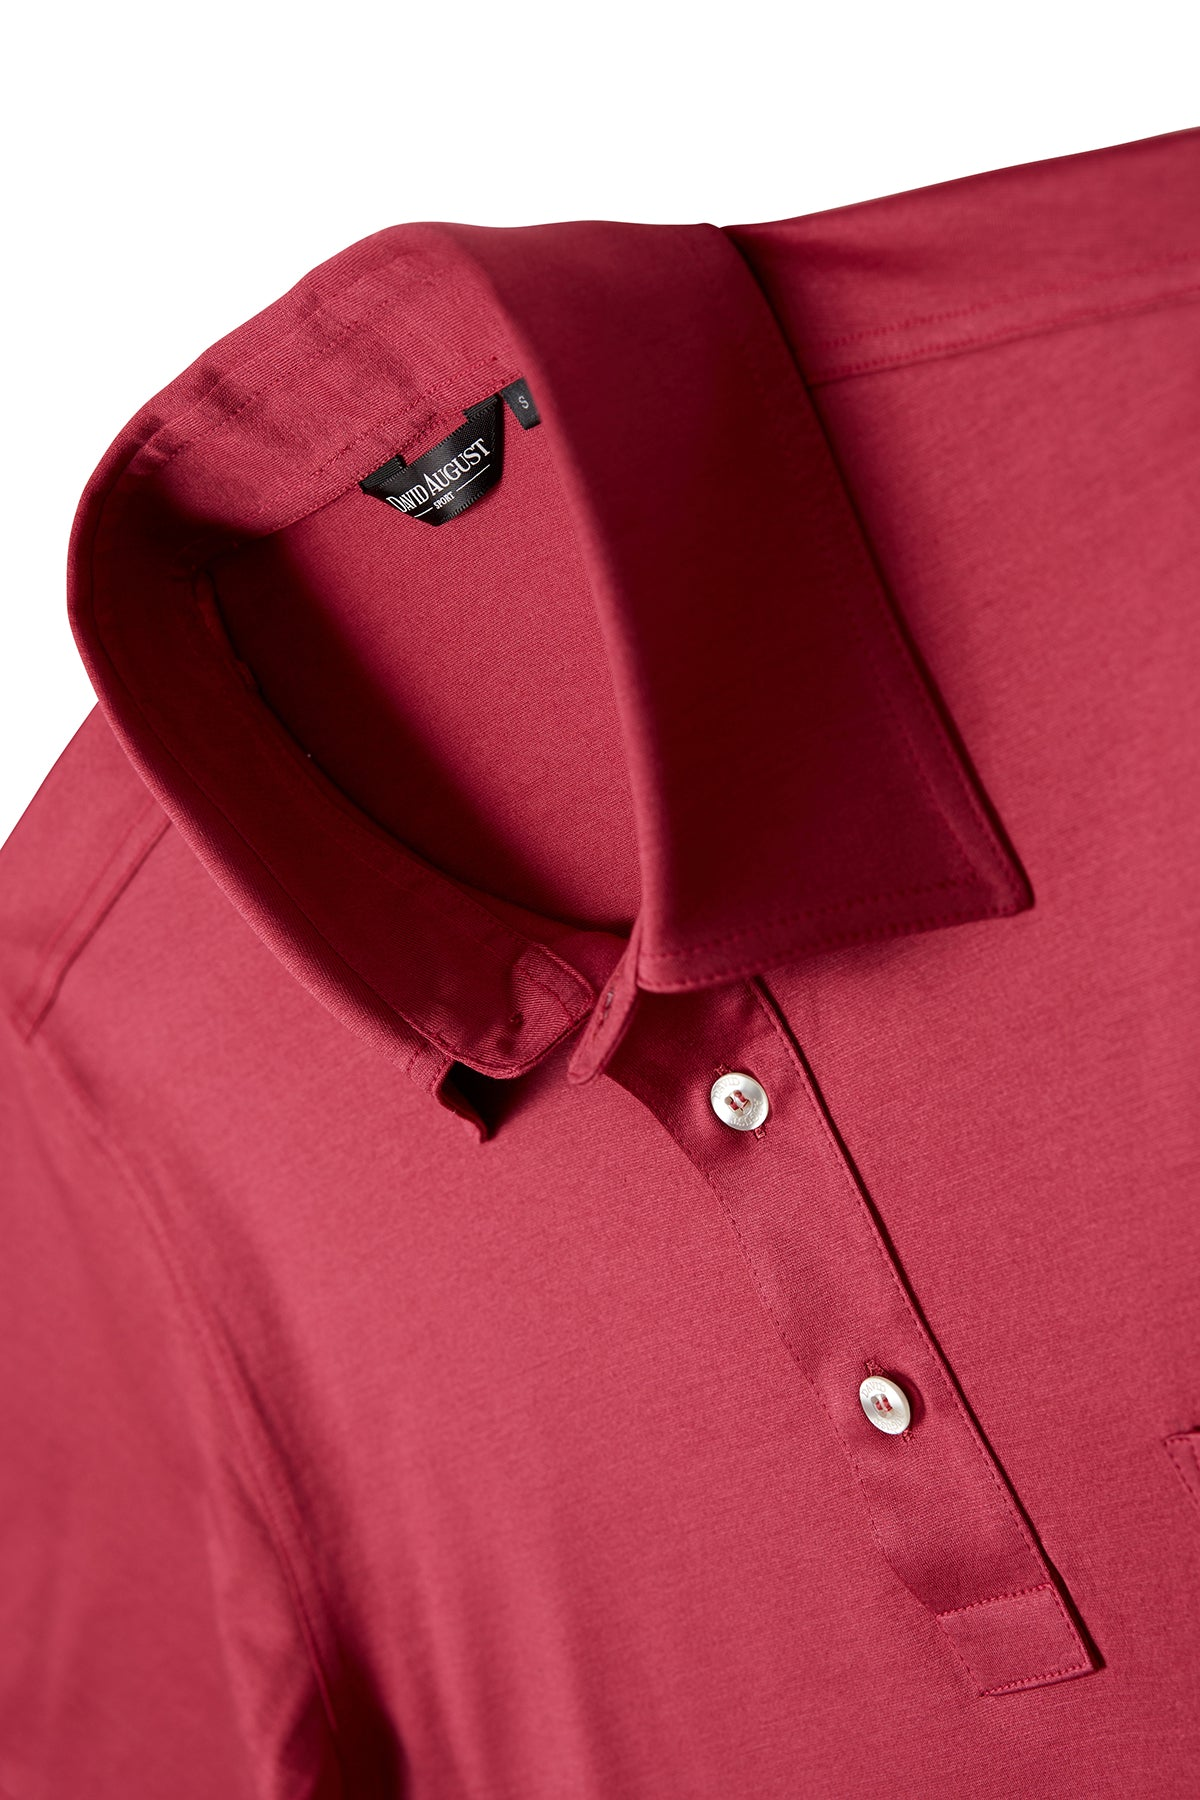 David August Mercerized Cotton Polo in Watermelon